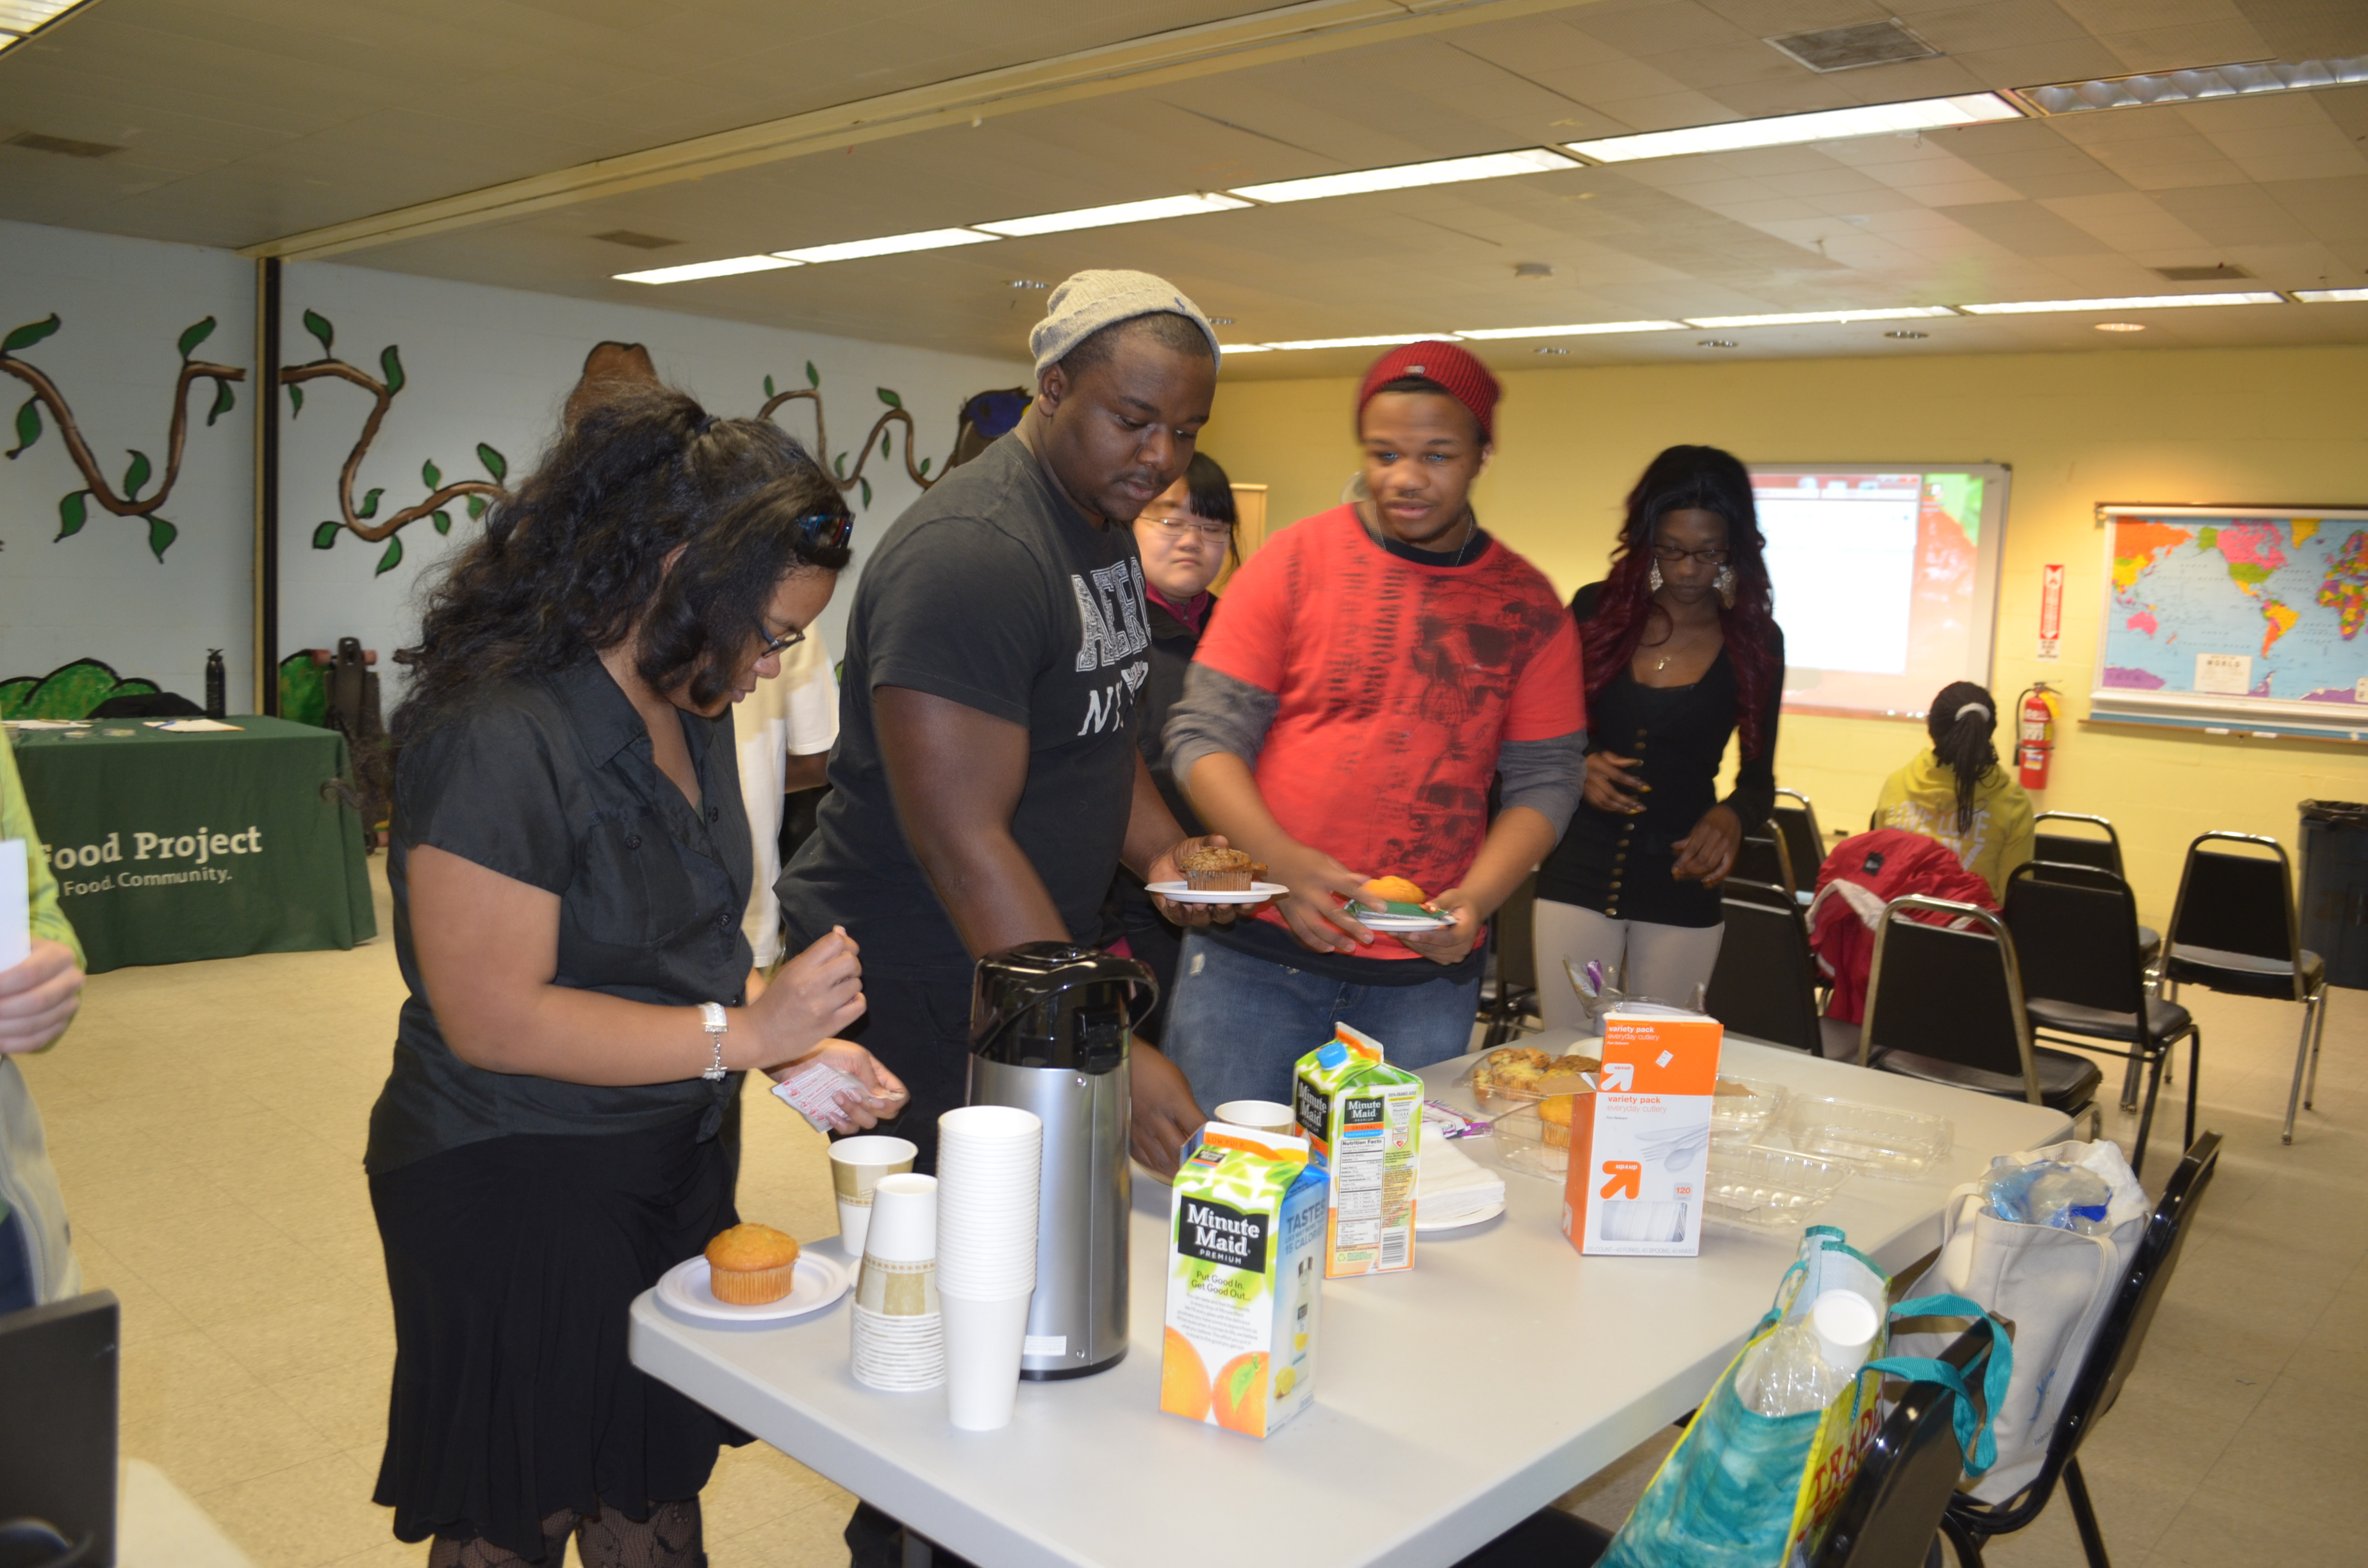 summer jobs fair the event was a great opportunity for youth to meet program staff and learn about the application process if you or anyone you know is interested in